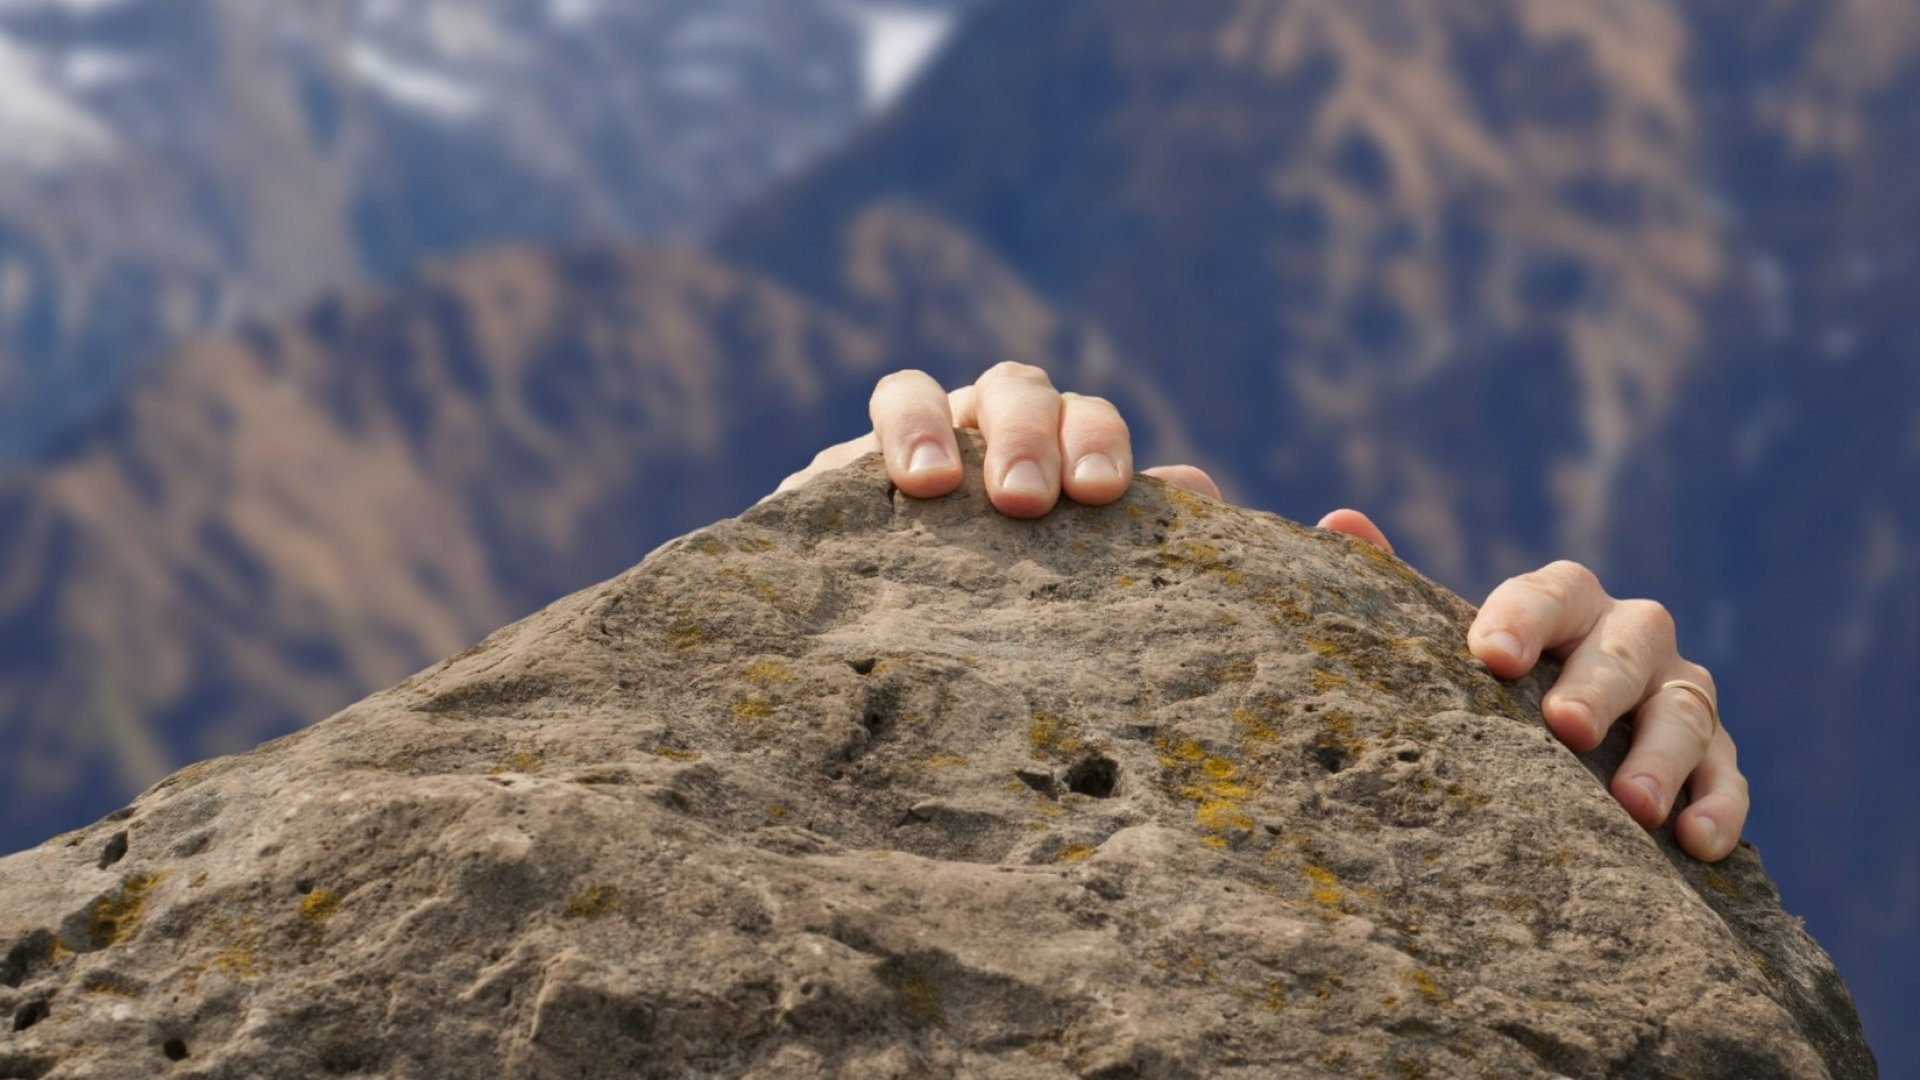 Your Startup Has Hit a Rough Patch. Here Are 3 Tips to Overcome Seemingly Impossible Obstacles